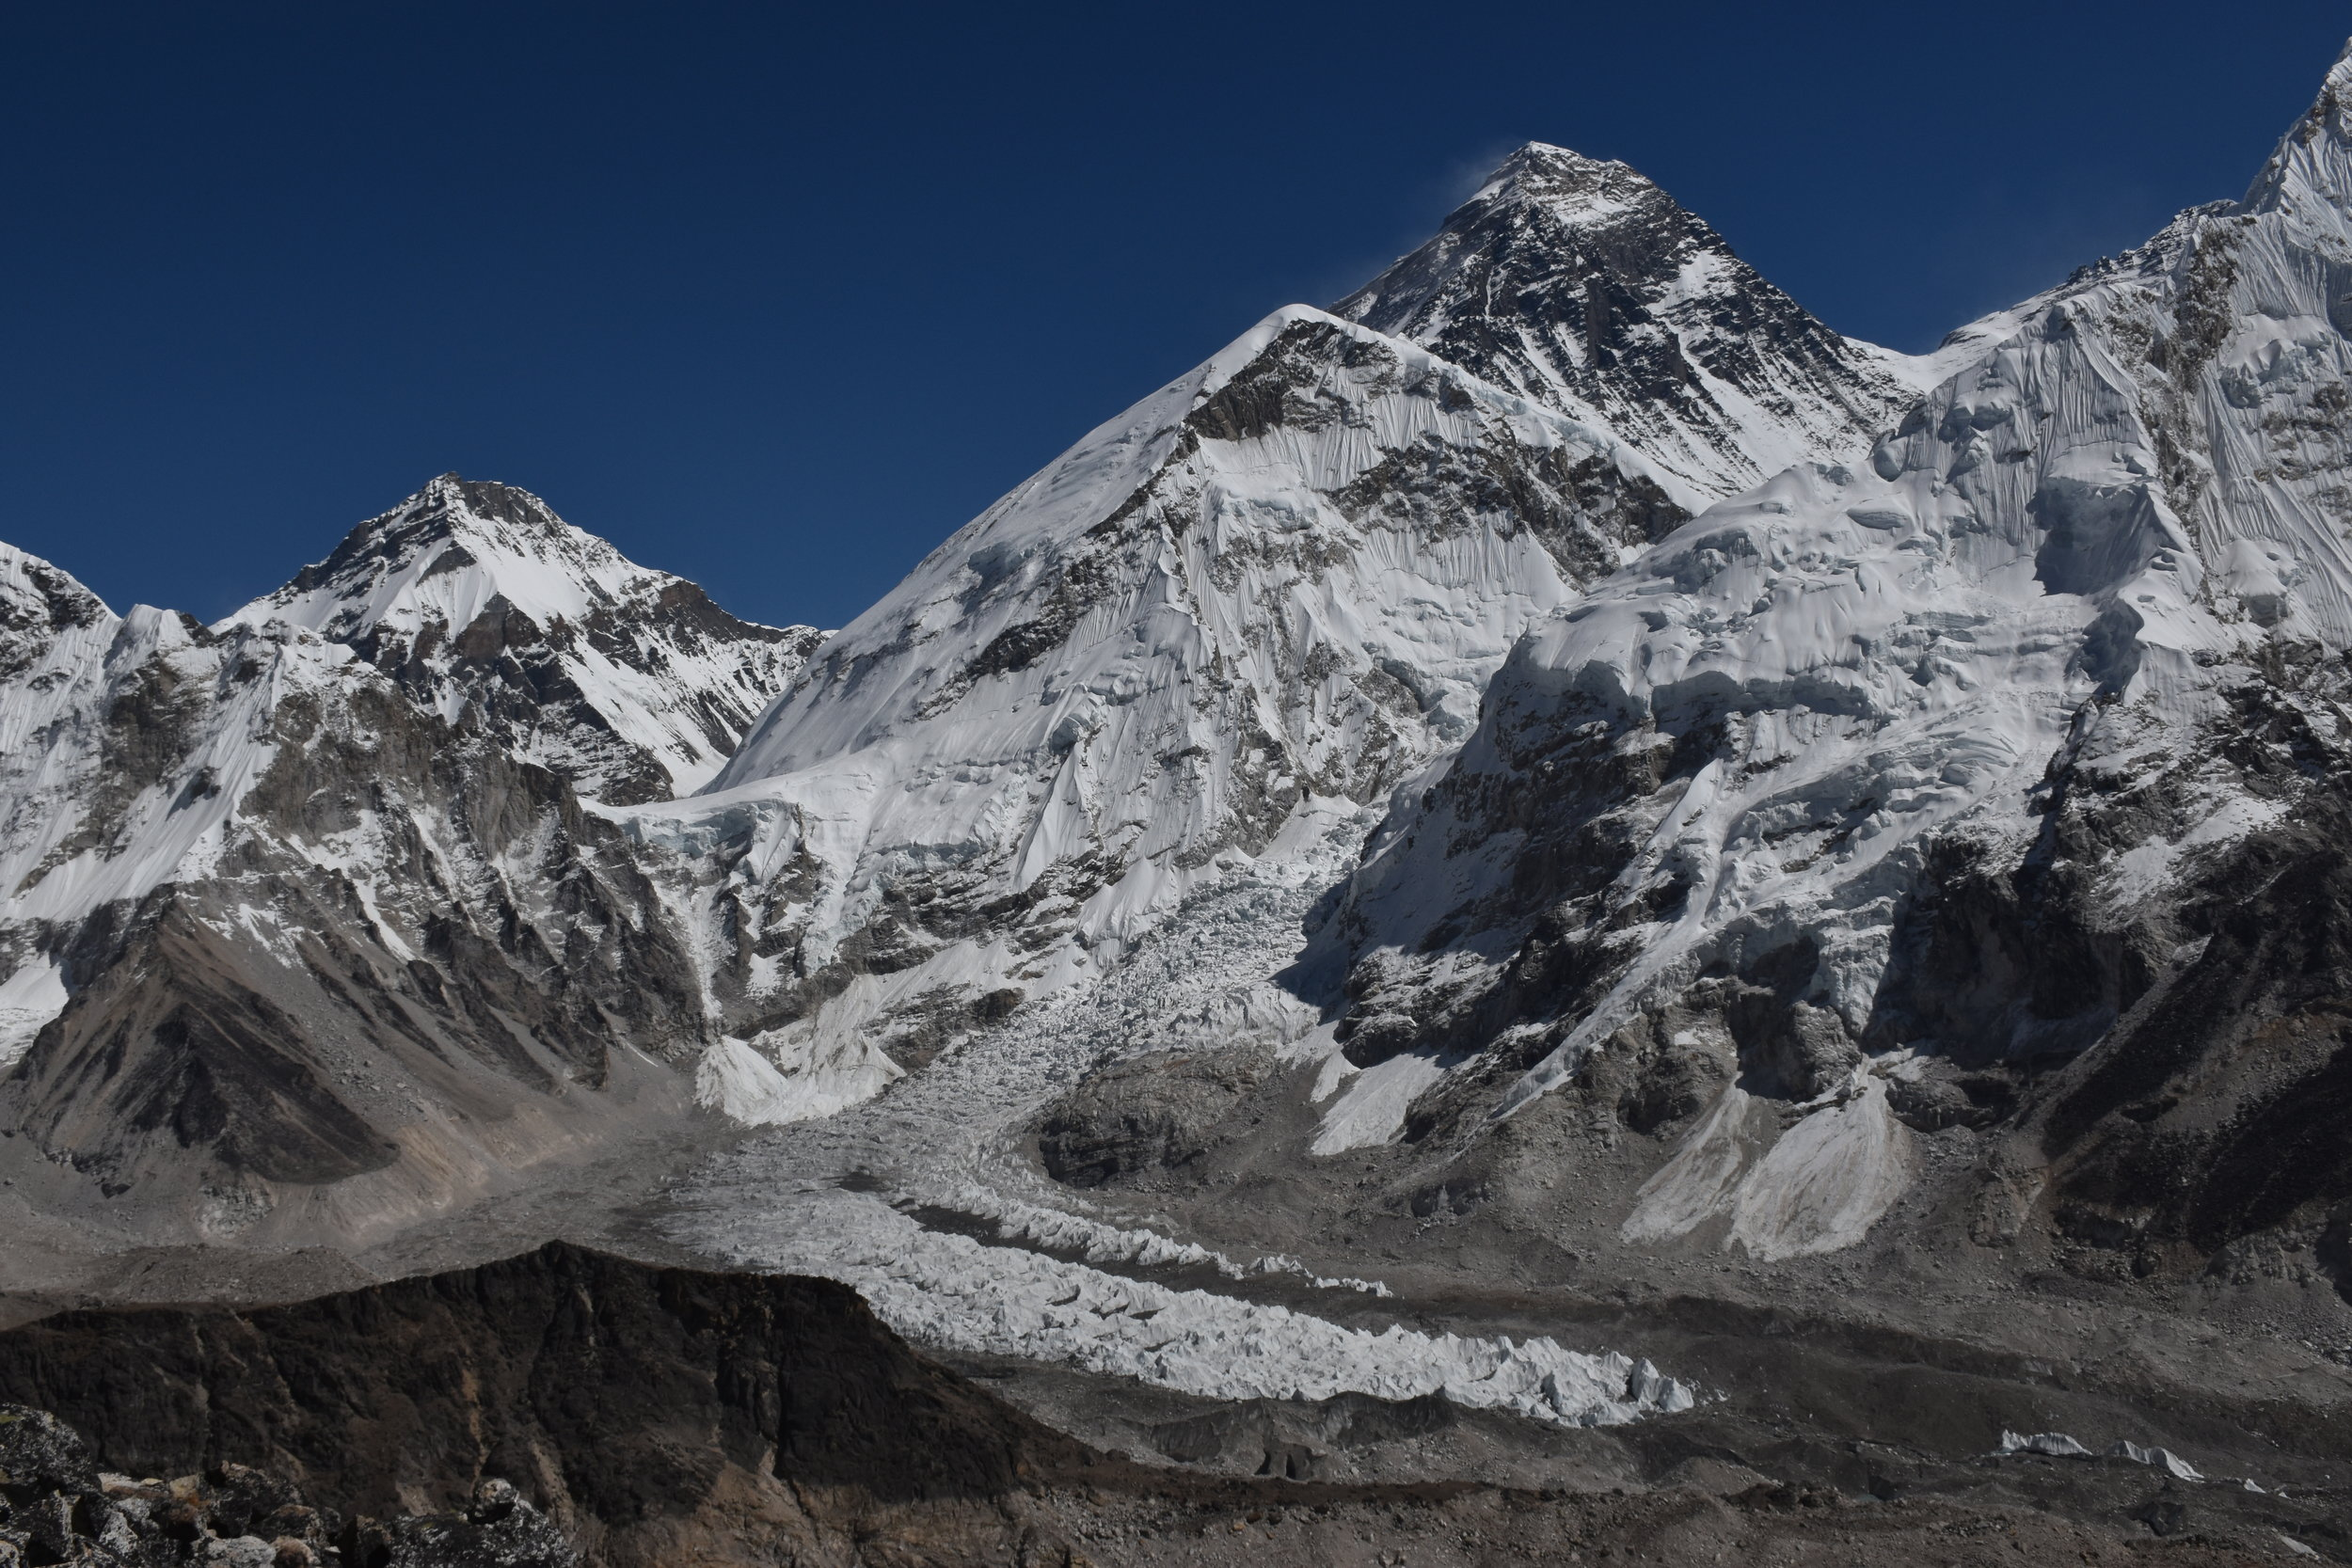 View from Kala Pattar (5545m) of Everest, the Khumba icefield, and EBC.